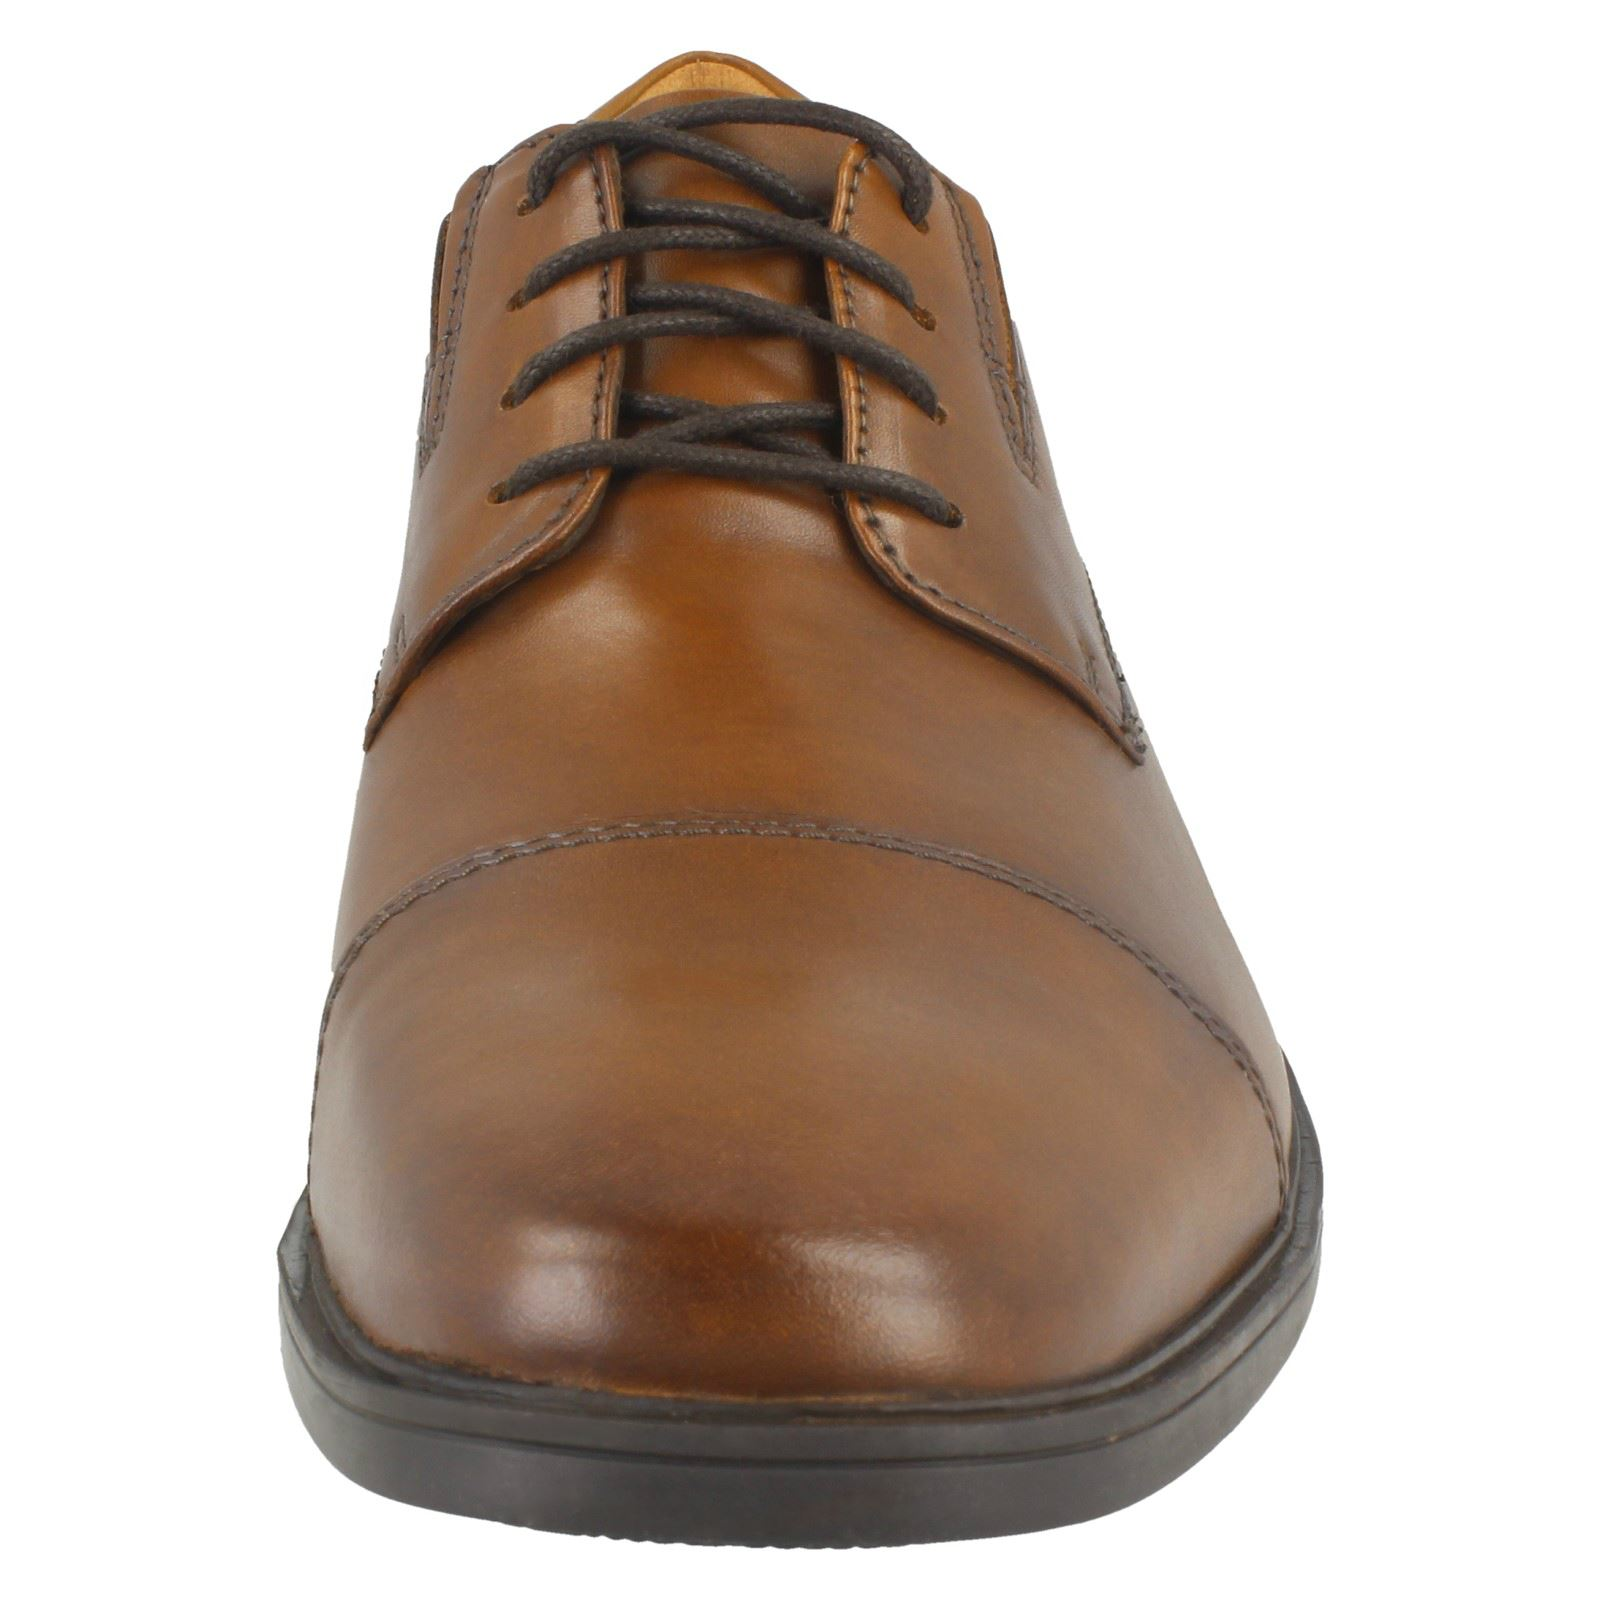 Mens-Clarks-Formal-Lace-Up-Shoes-Tilden-Cap thumbnail 26